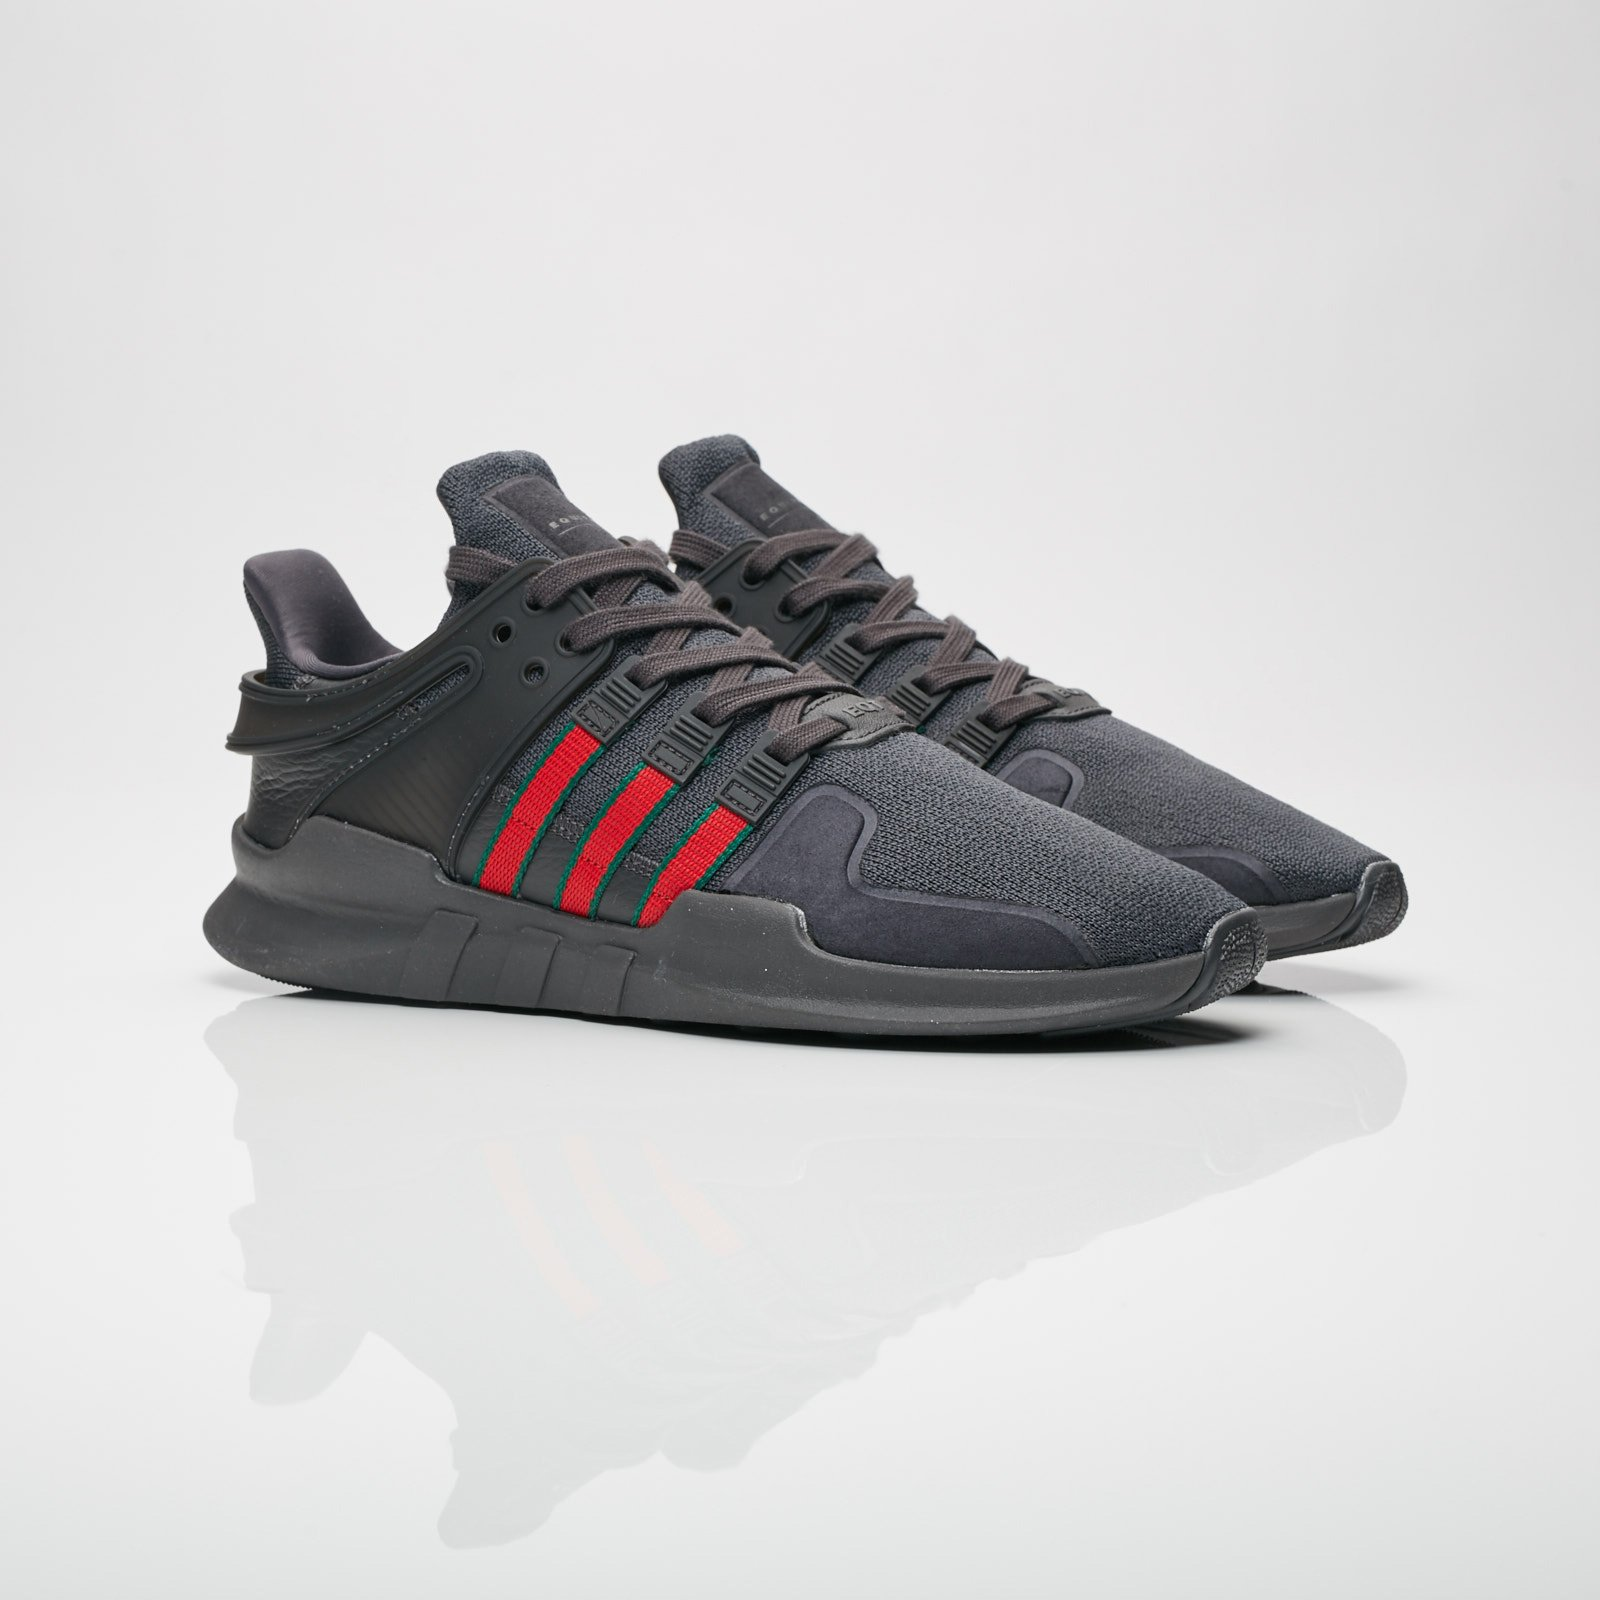 63de0ba1c53dad adidas EQT Support ADV - Bb6777 - Sneakersnstuff